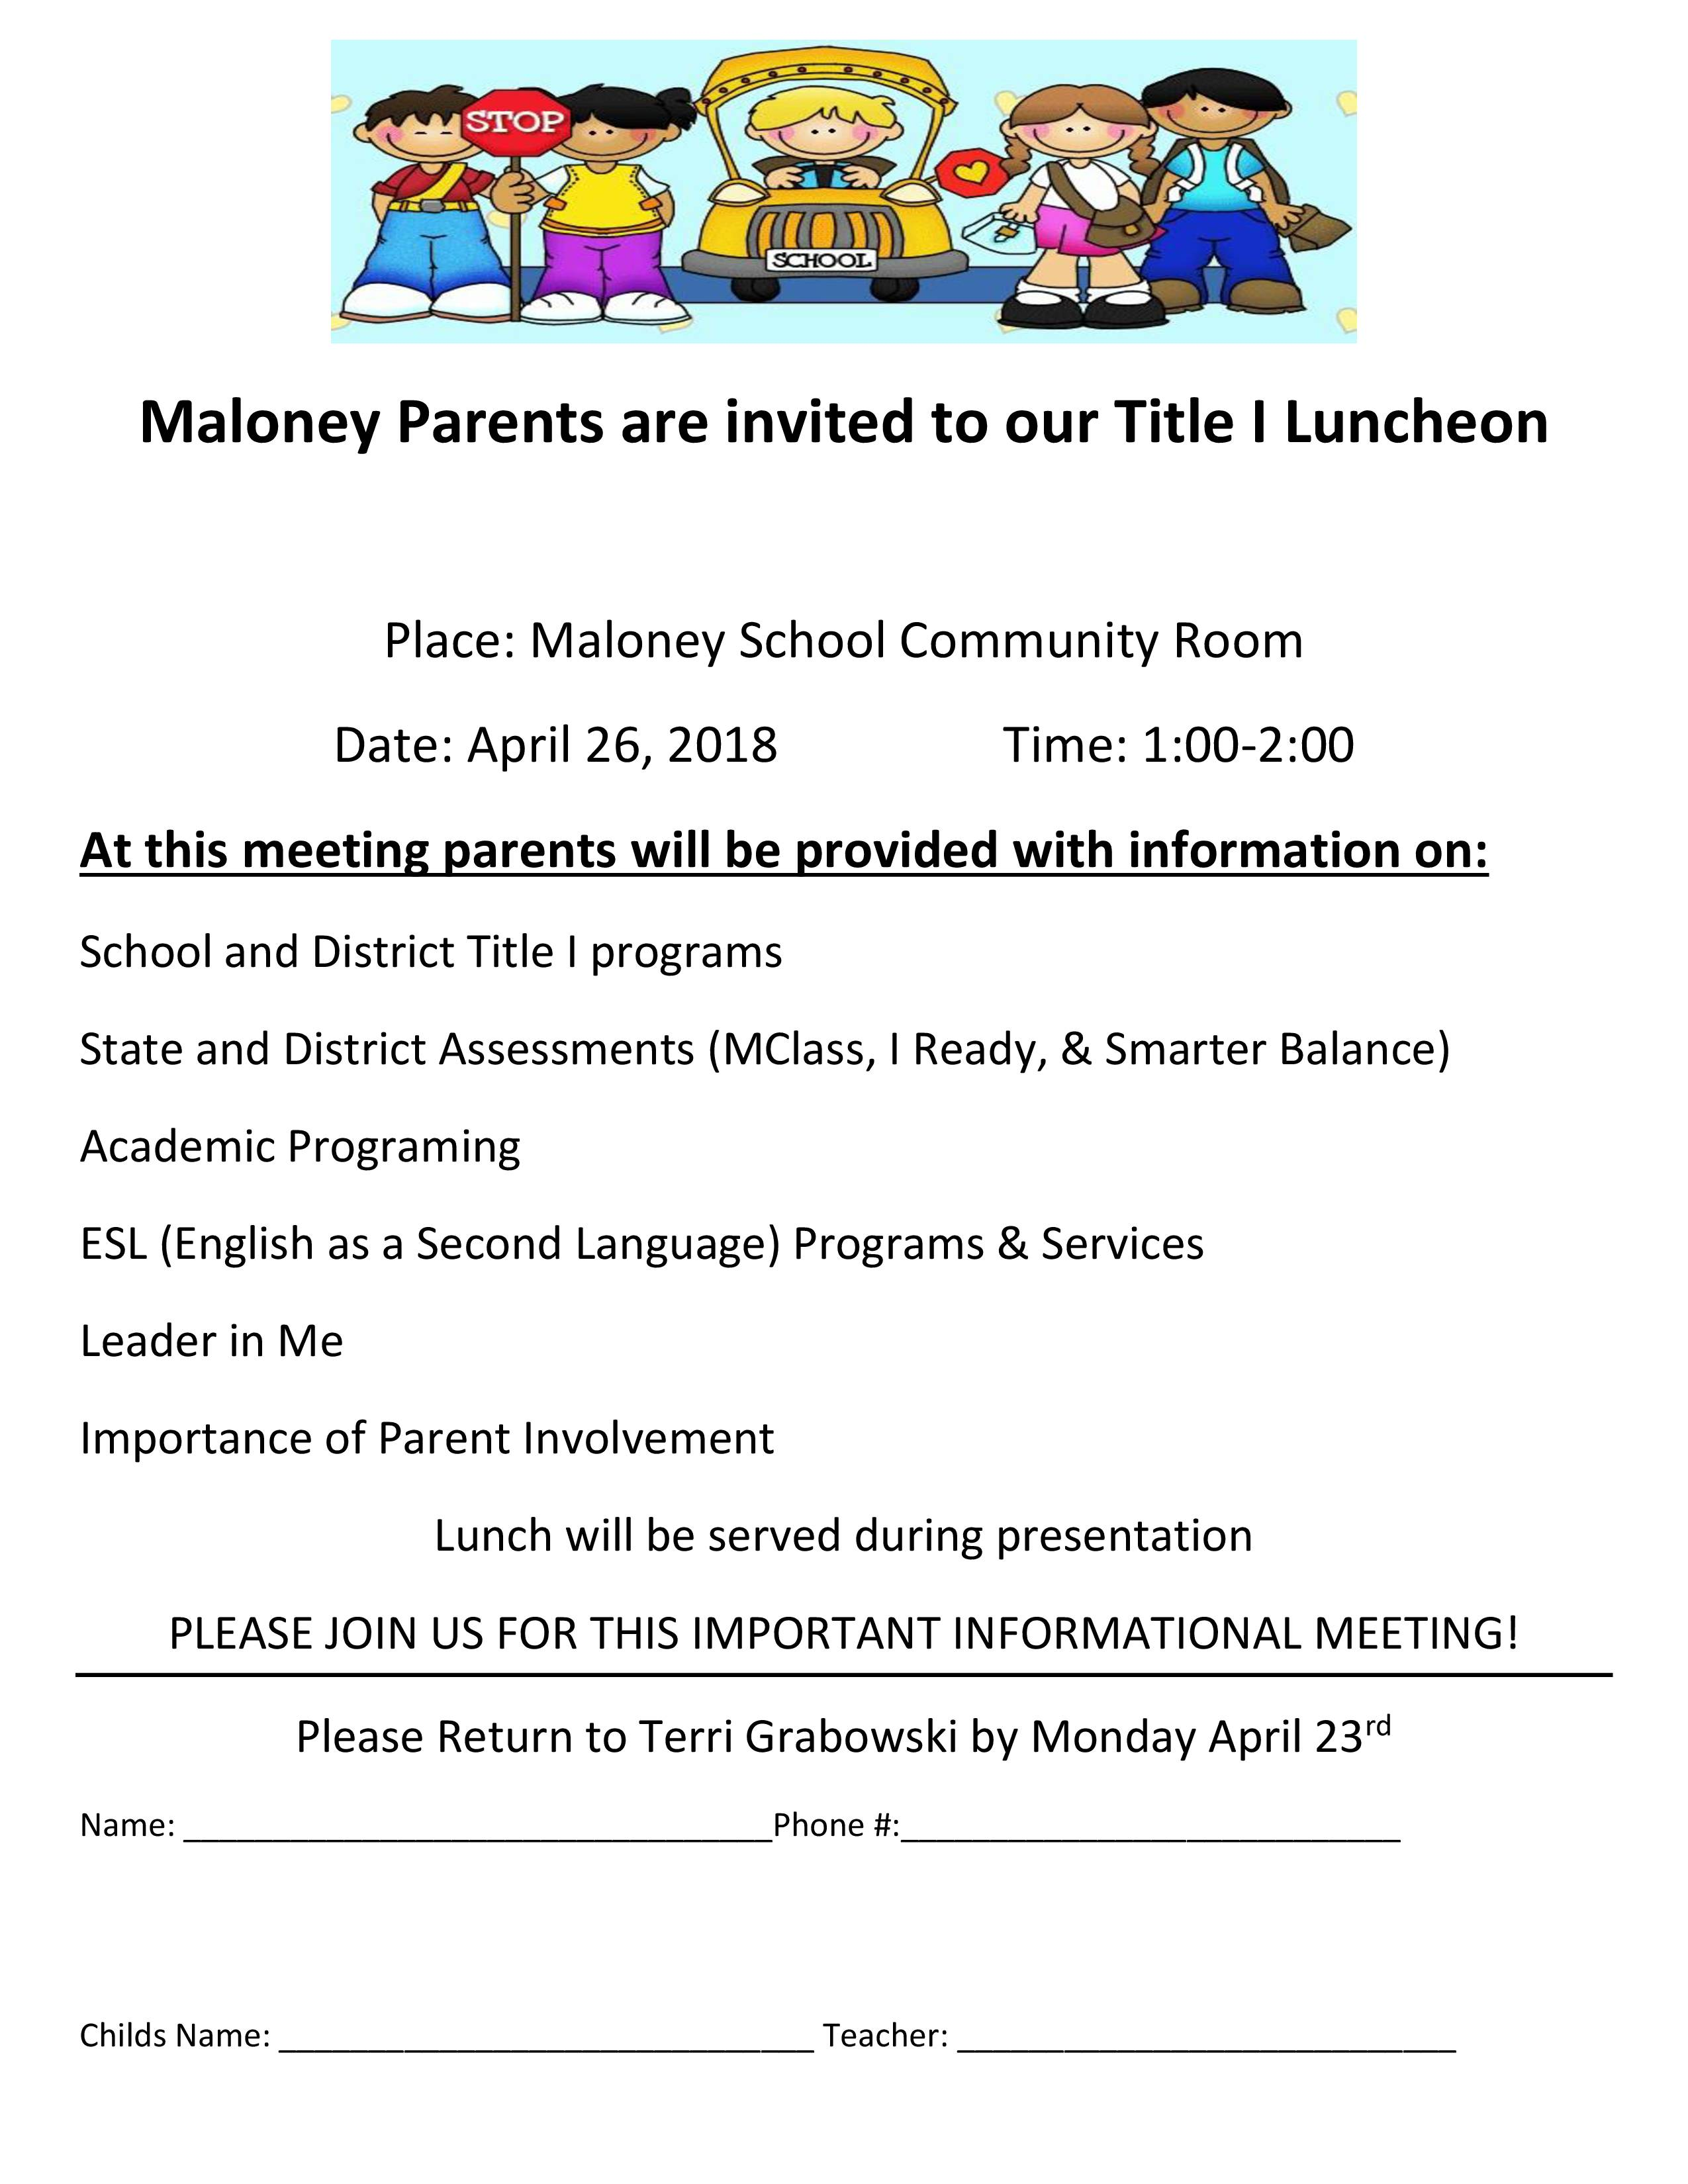 Title 1 Luncheon Flyer